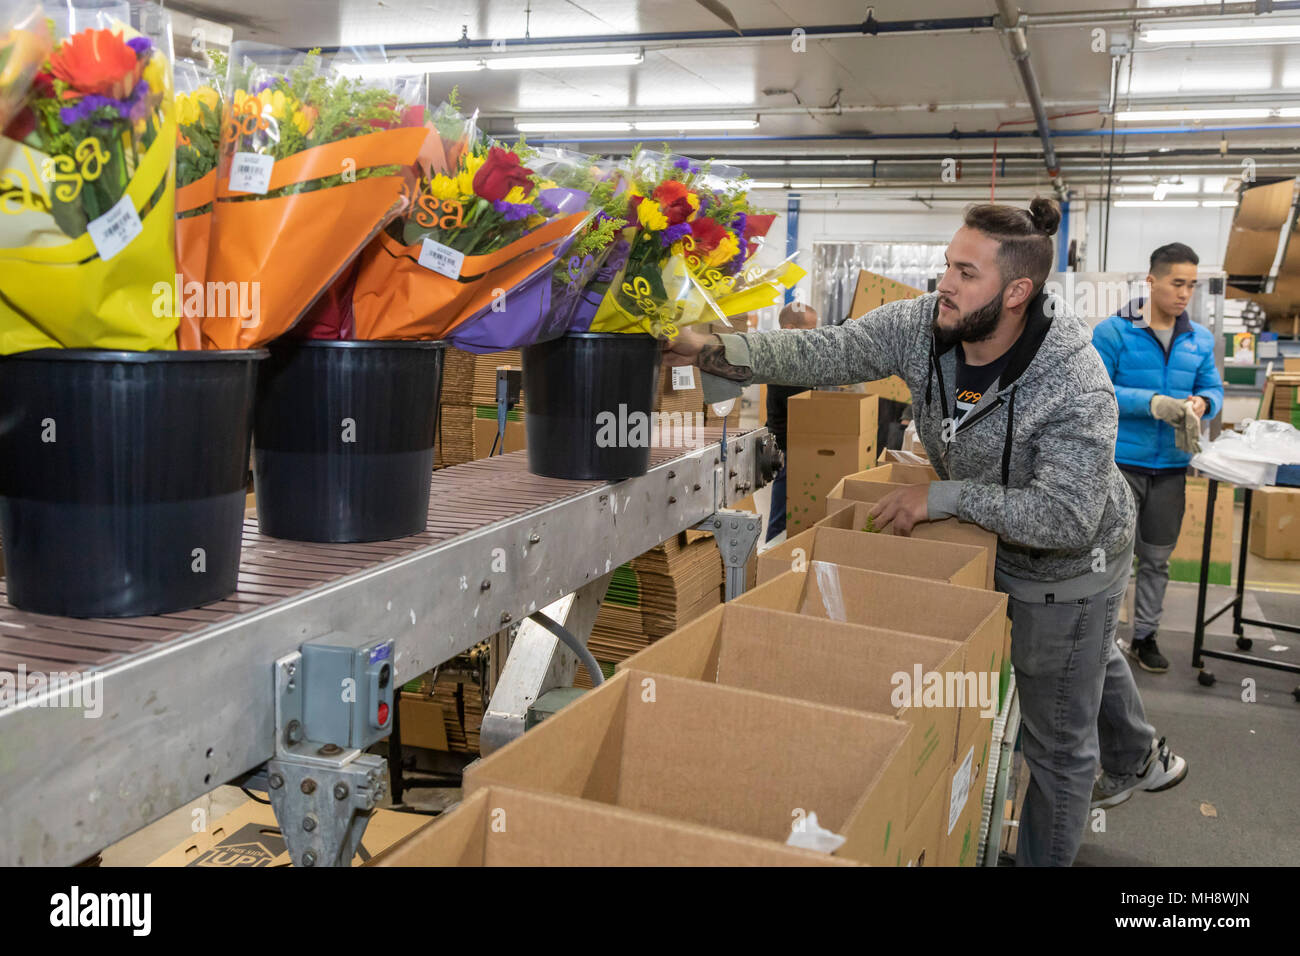 Doral, Florida - Workers process cut flowers from South America at the USA Bouquet warehouse near the Miami airport. Working at 40 degrees F, workers  - Stock Image